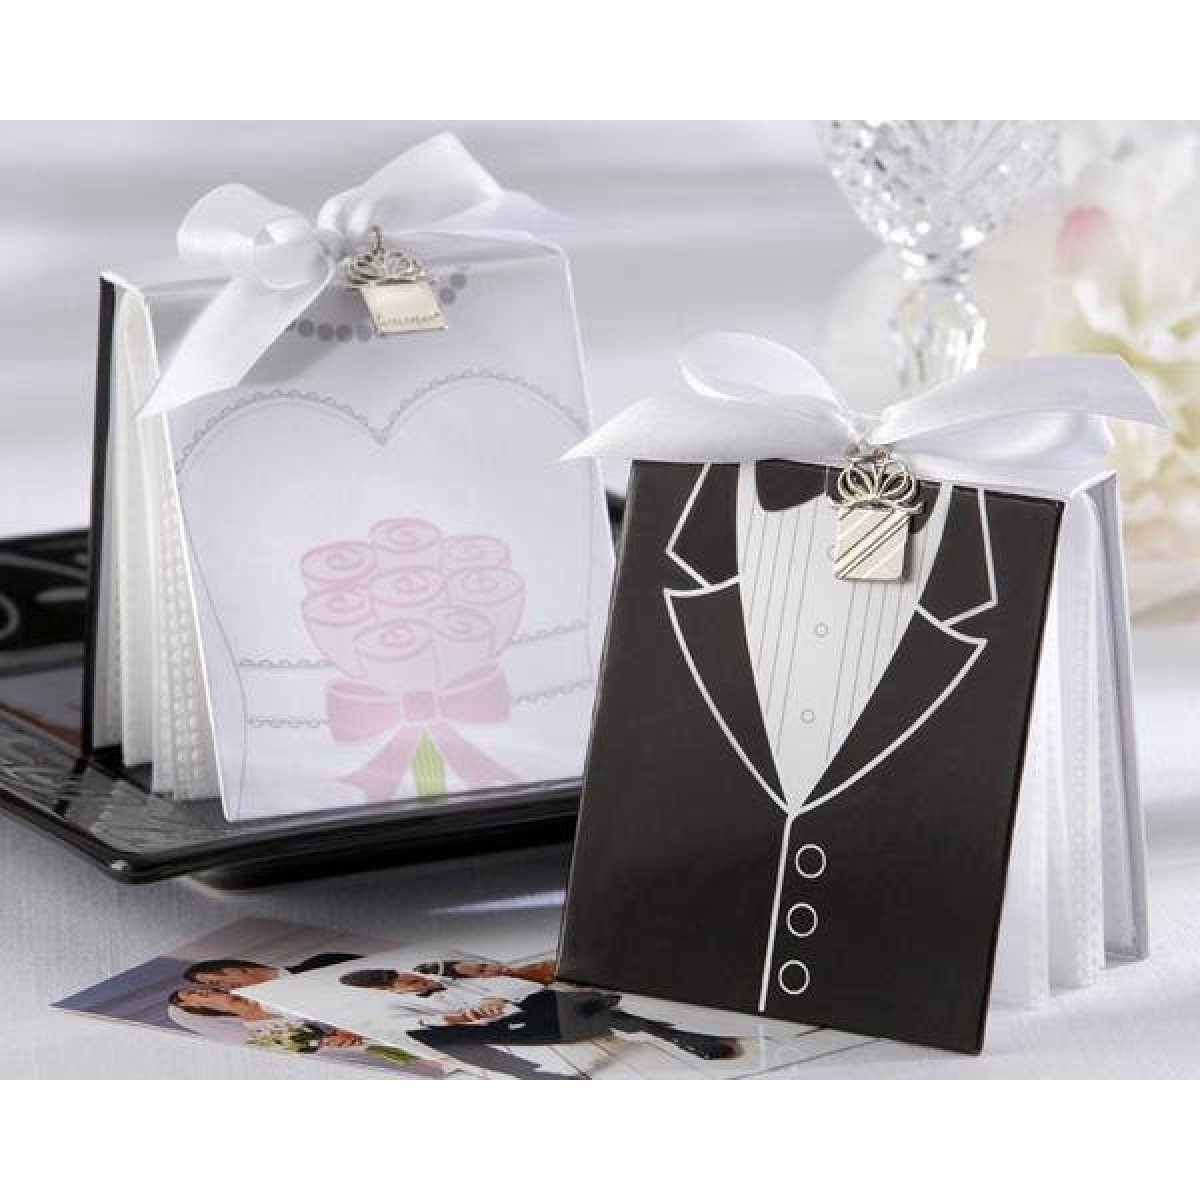 Wedding Gifts For Bride And Groom In Singapore : Bride and Groom Photo Album Favors